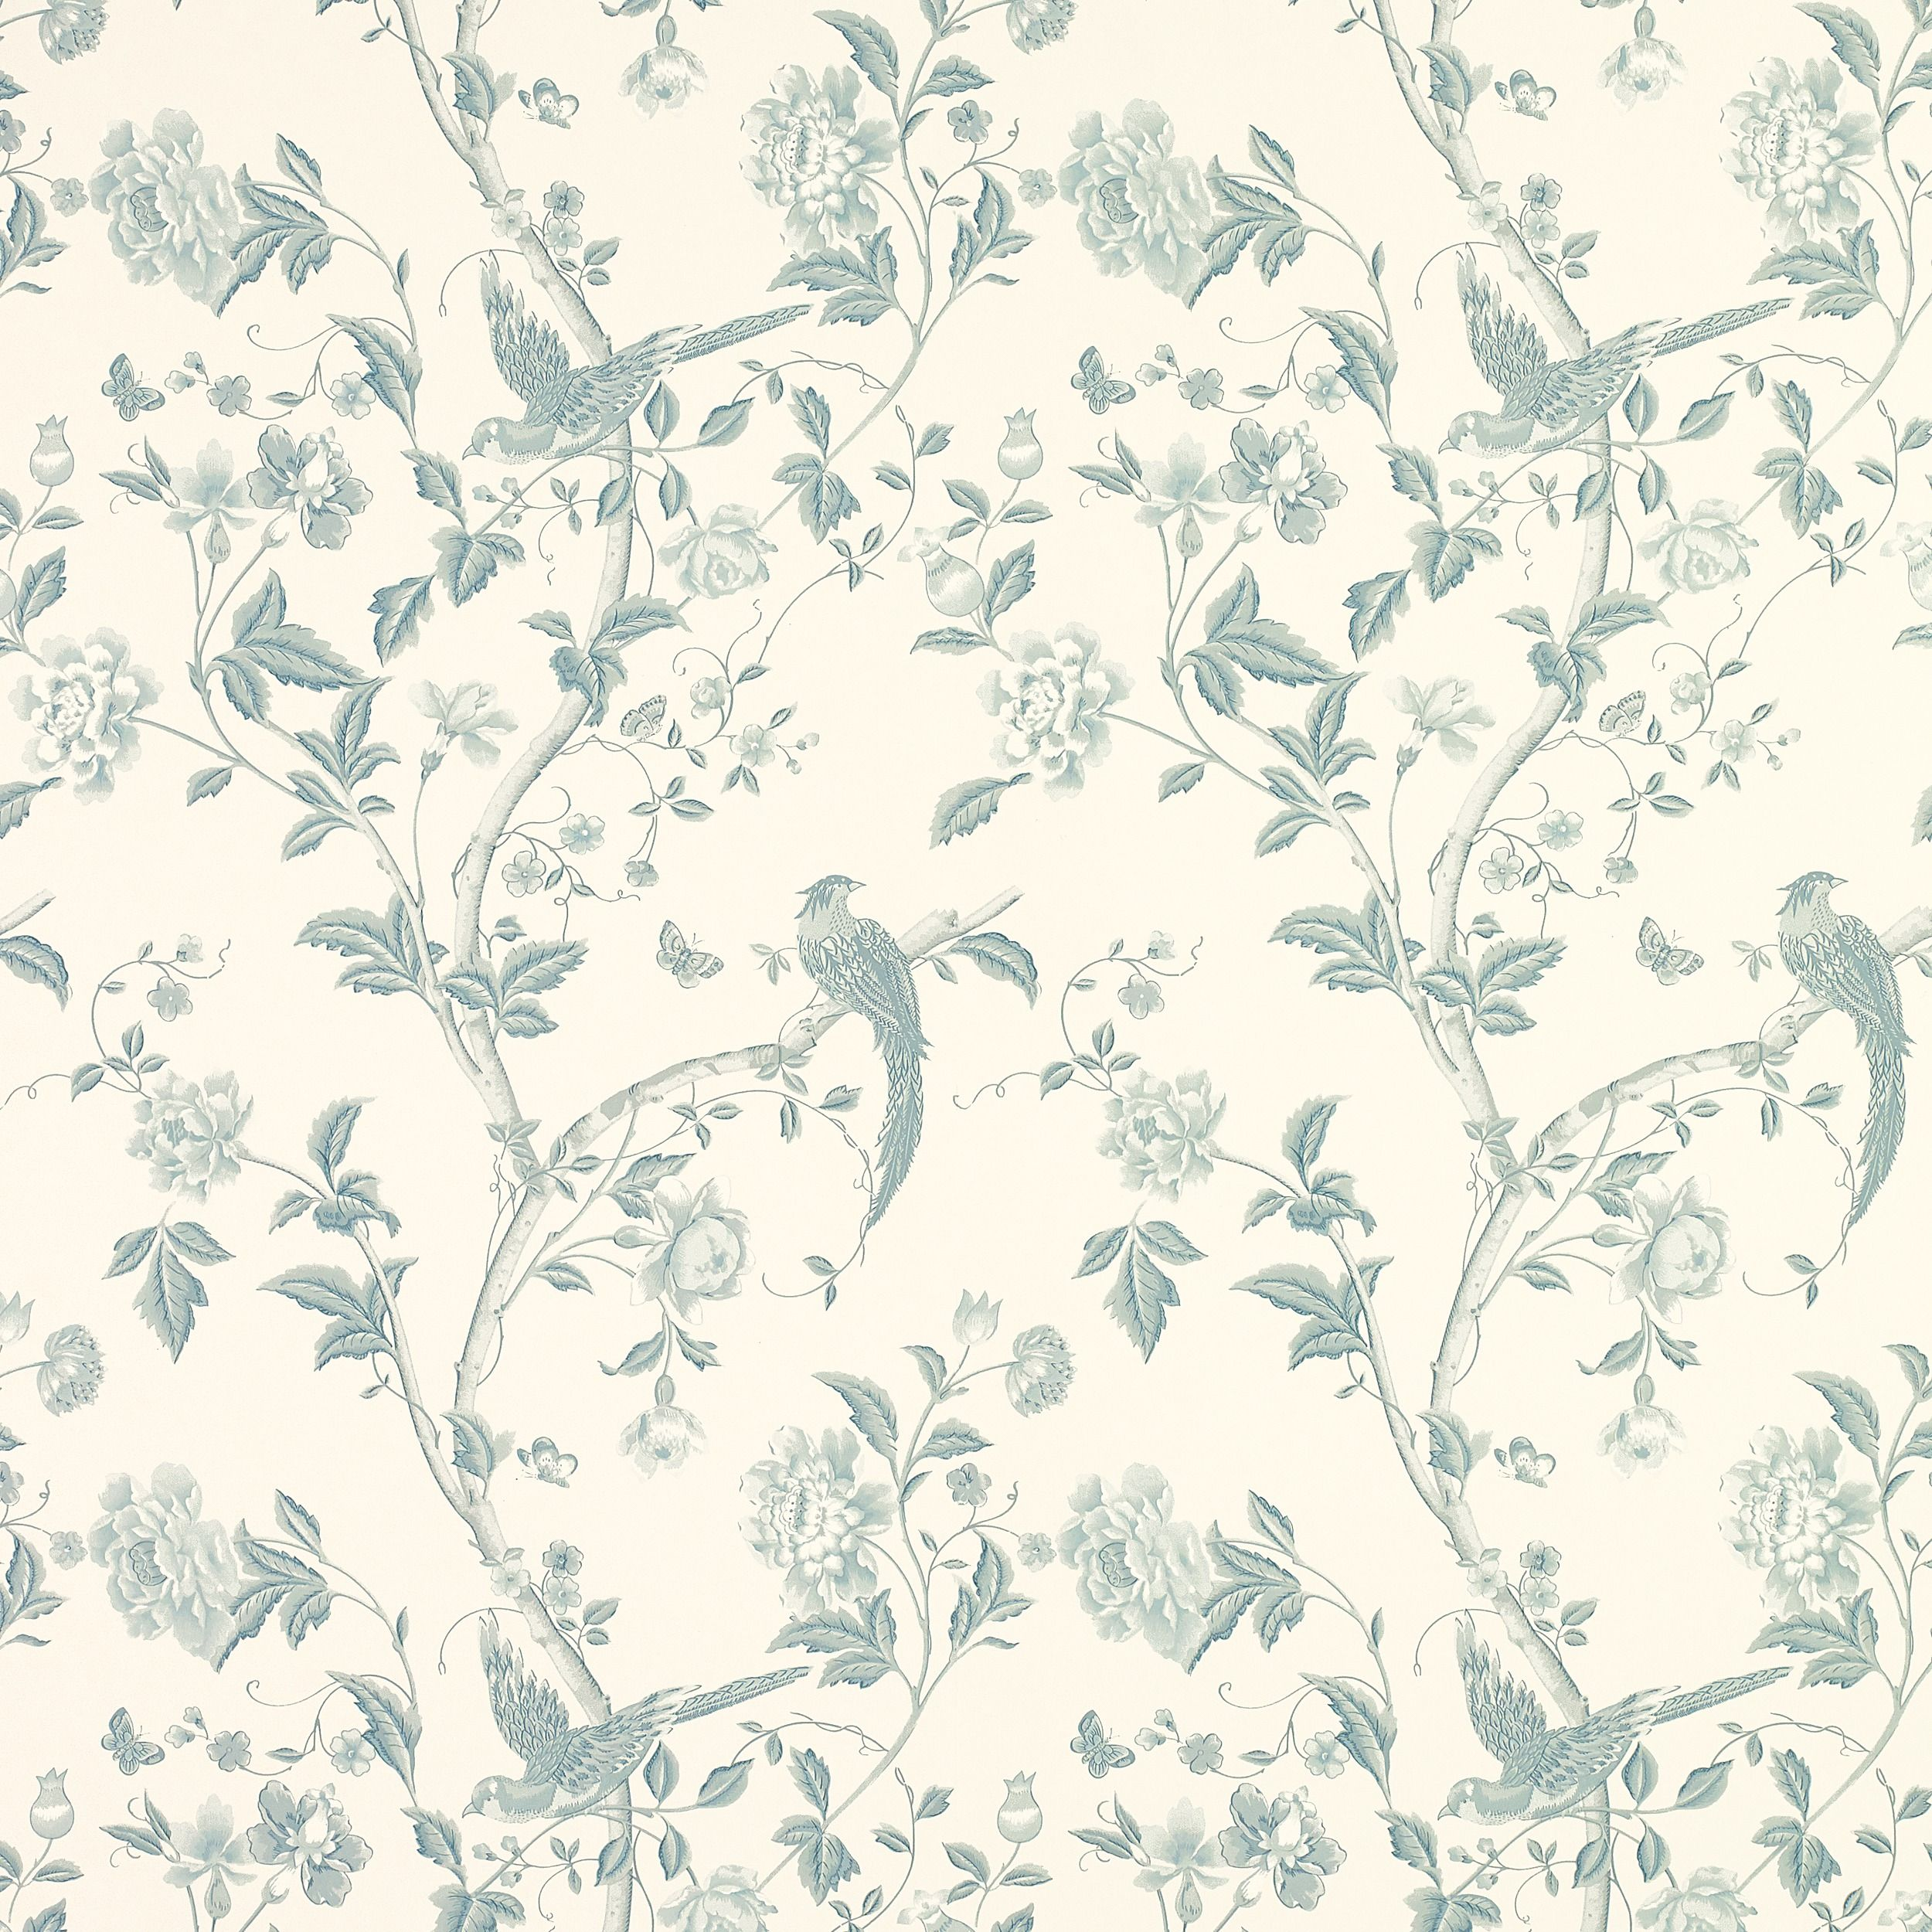 summer palace off white duck egg blue wallpaper at laura ashley paint surfaces pinterest. Black Bedroom Furniture Sets. Home Design Ideas